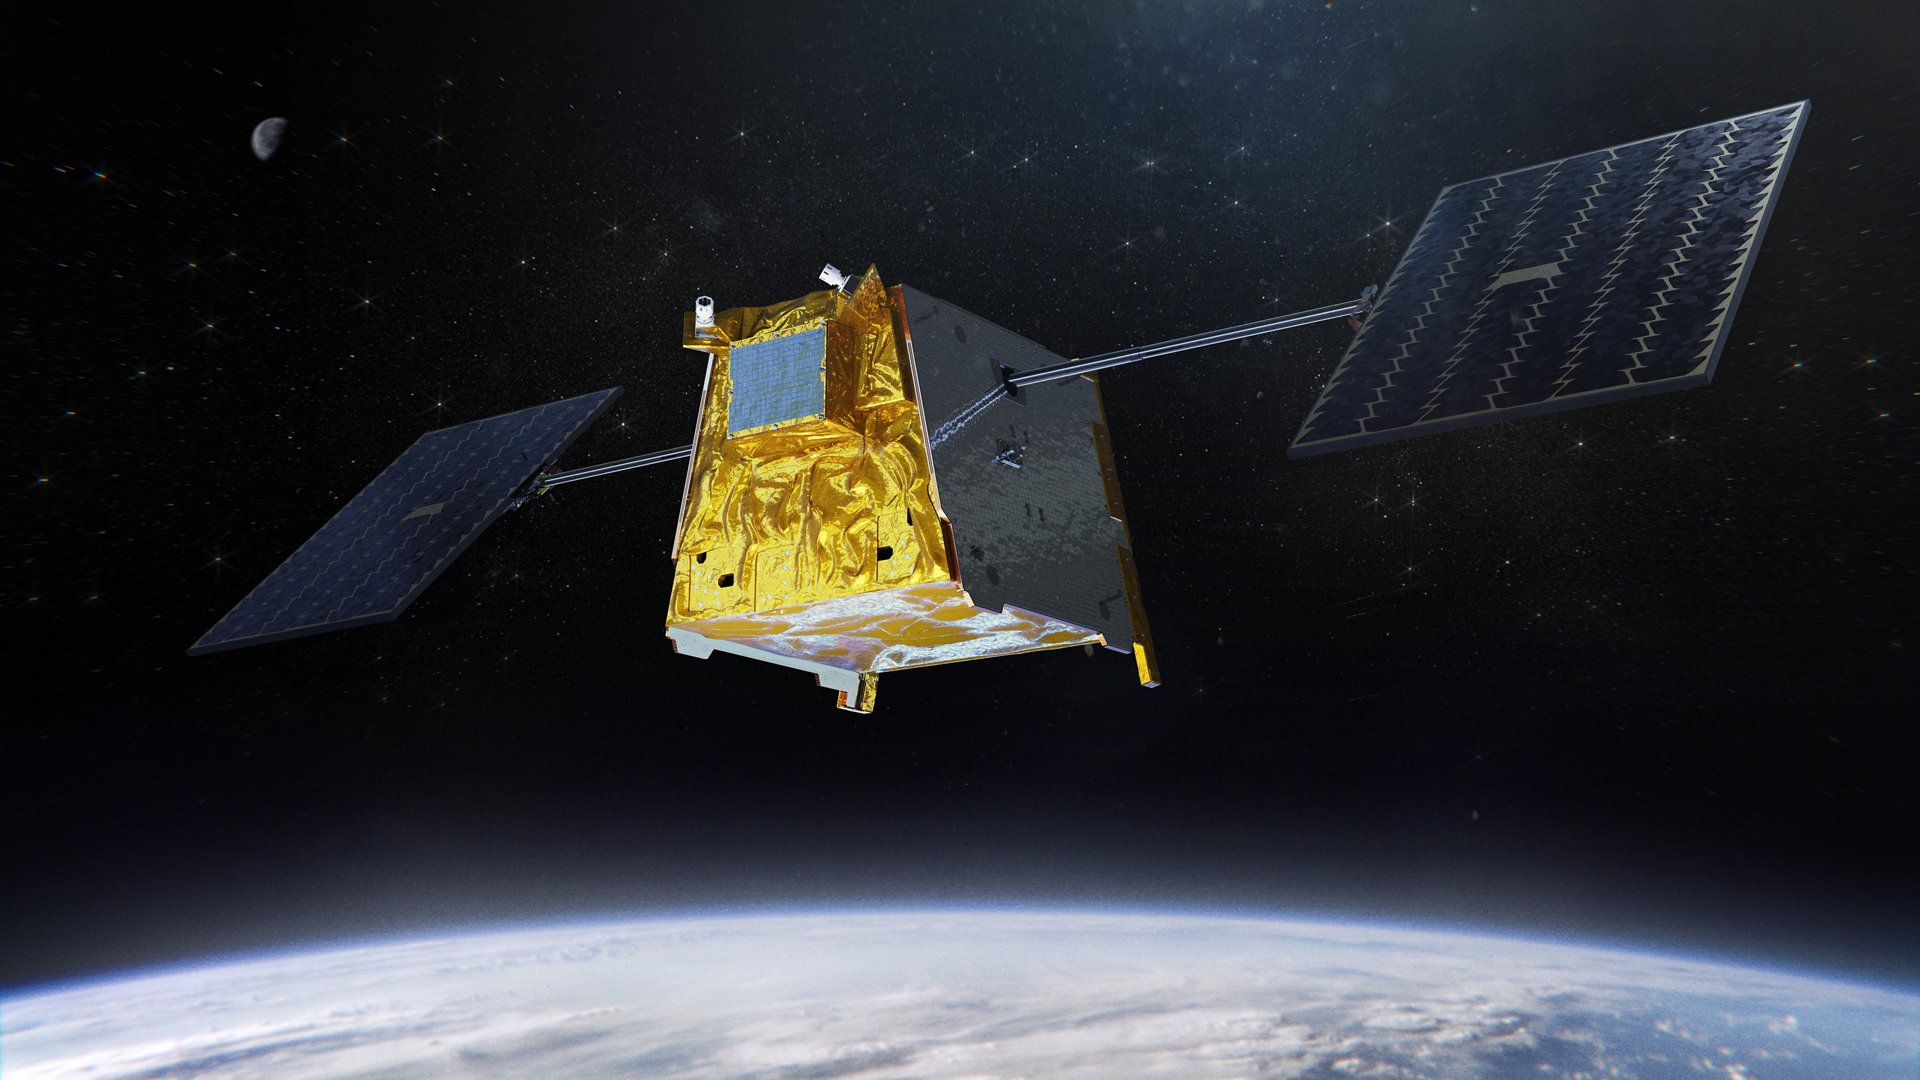 Airbus becomes an enabler for low-Earth orbit technology demonstrations